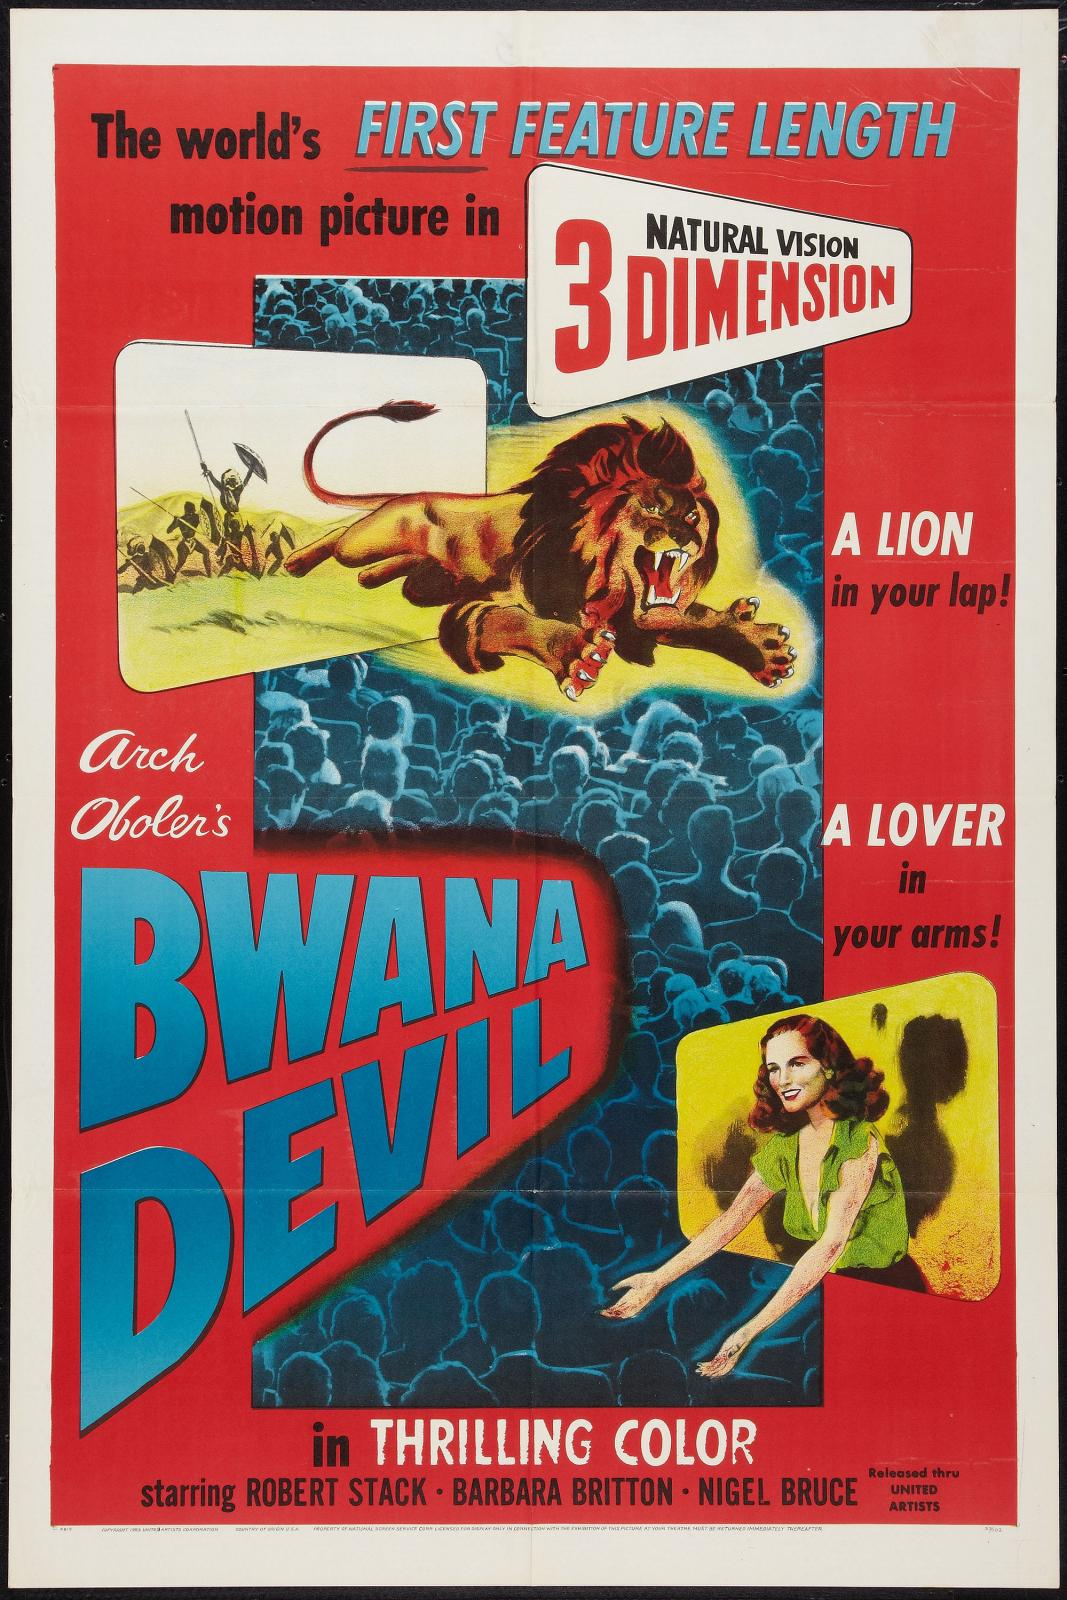 BwanaDevil-1952-UA-one.jpg